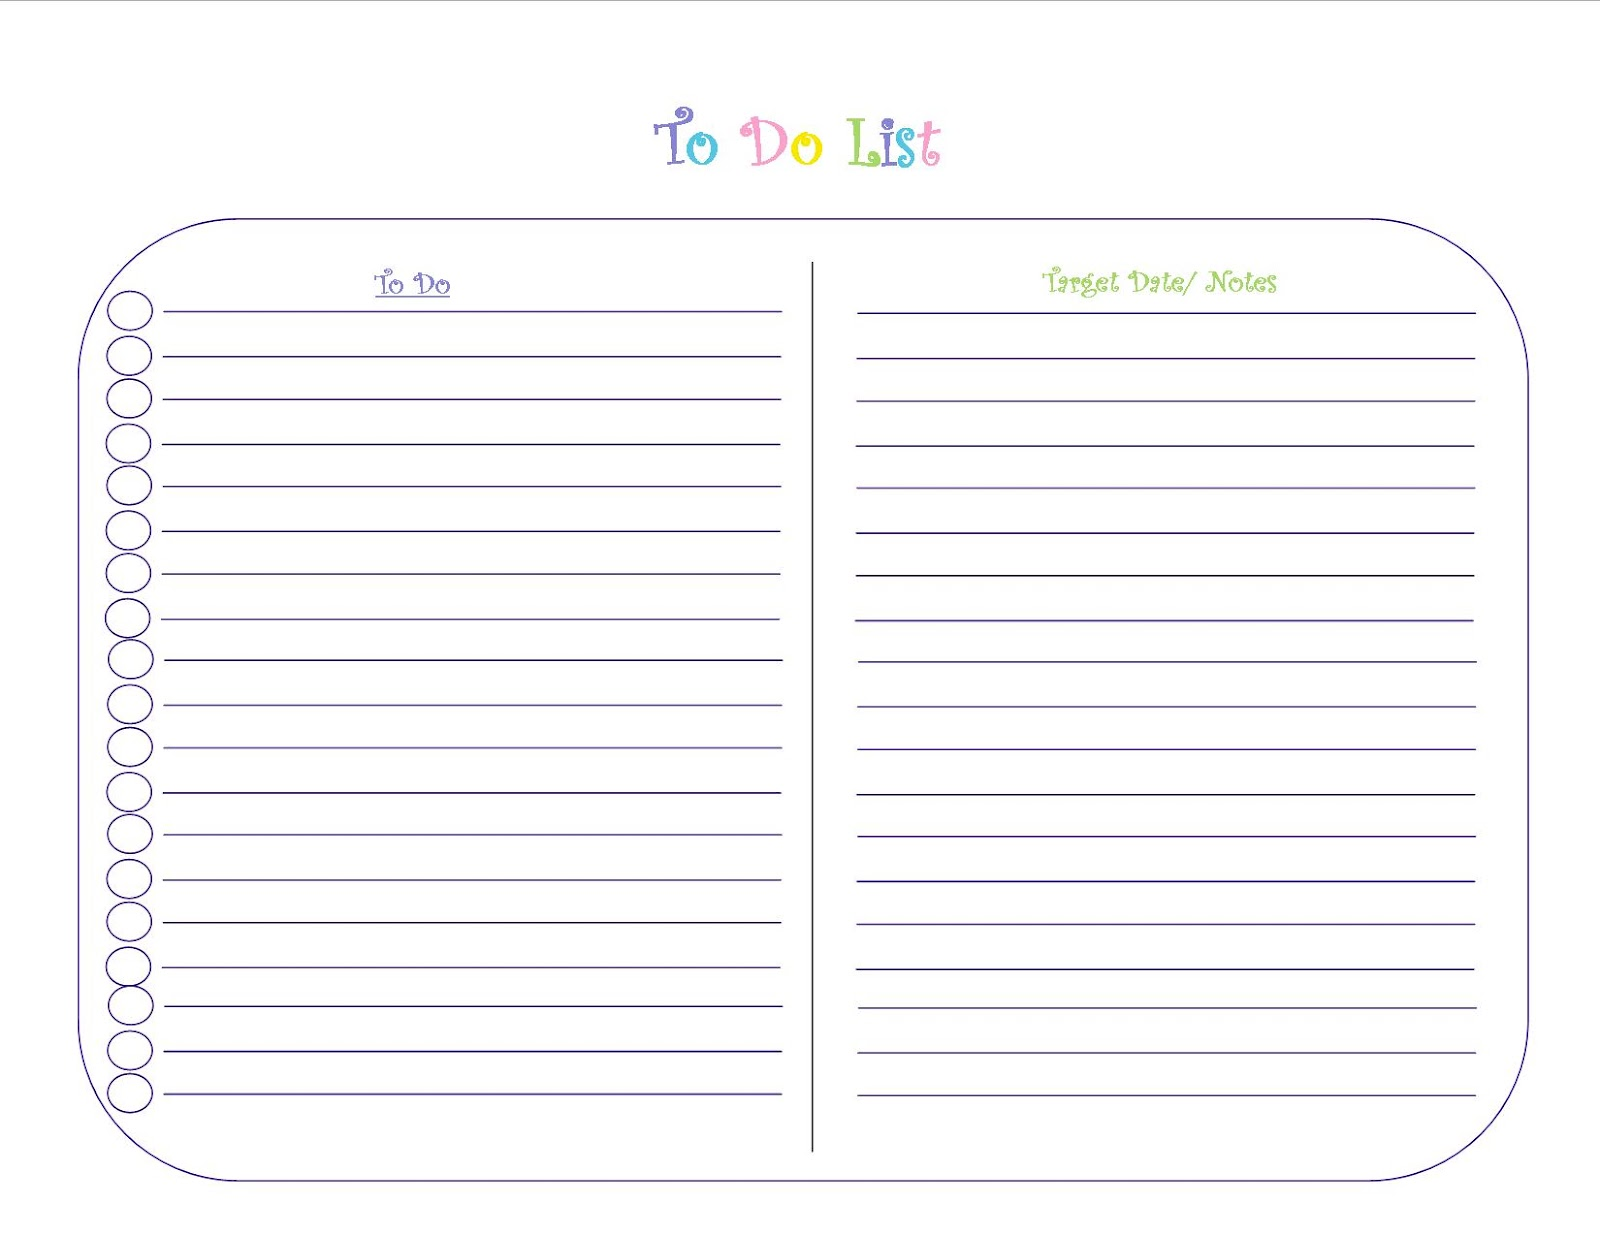 10 Marketing To Do List Templates – Free Printable Daily to Do List Template